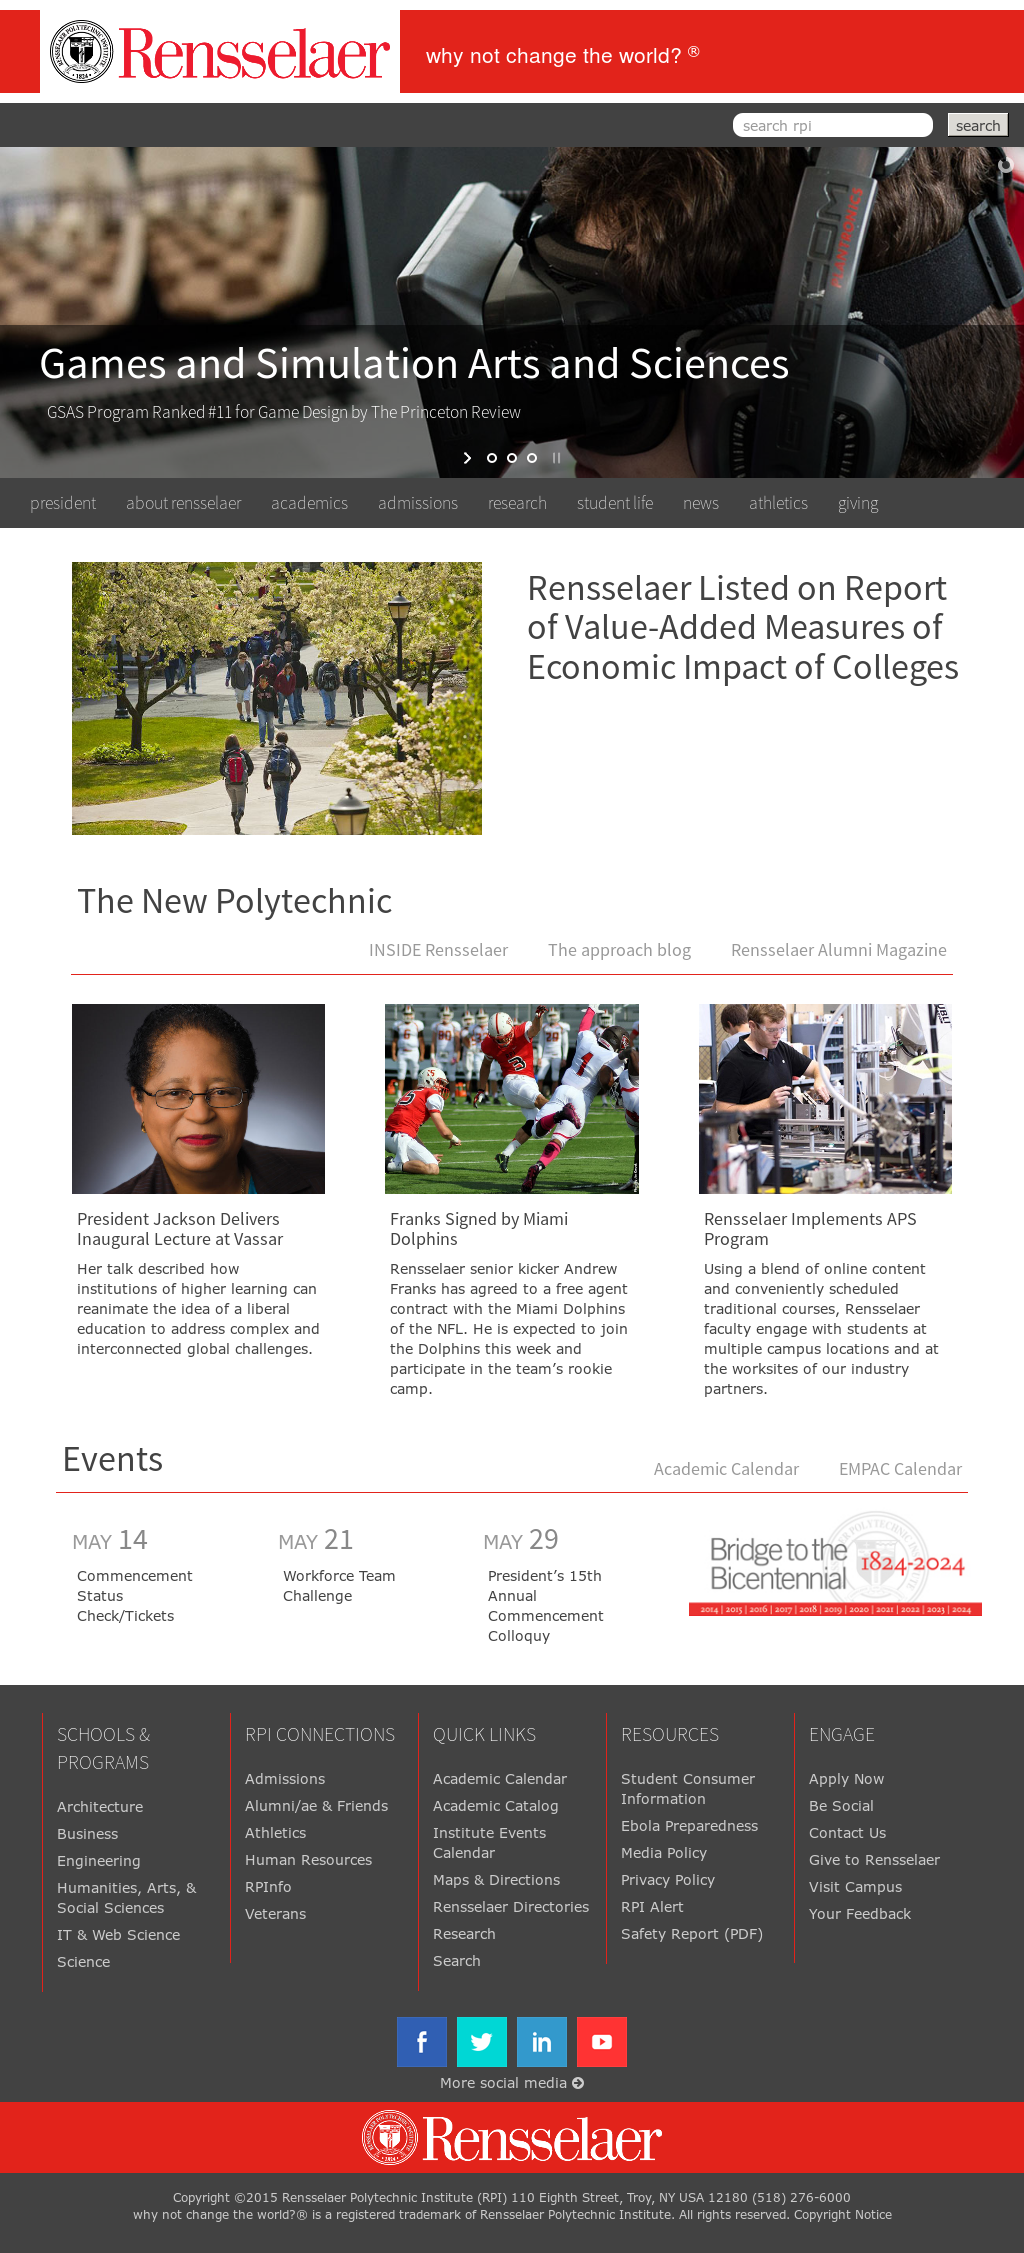 Rpi Academic Calendar 2022 2023.Rensselaer Polytechnic Institute S Competitors Revenue Number Of Employees Funding Acquisitions News Owler Company Profile